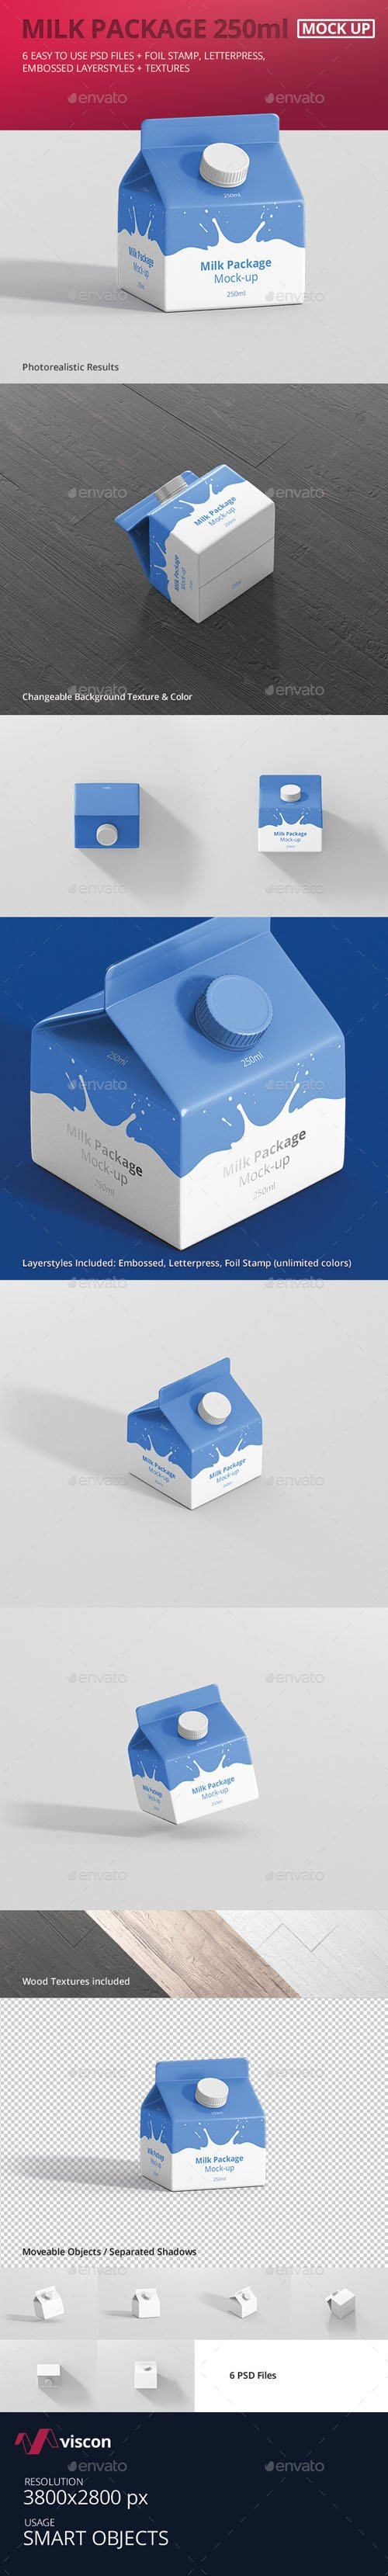 Juice / Milk Mockup - 250ml Carton Box 18191218